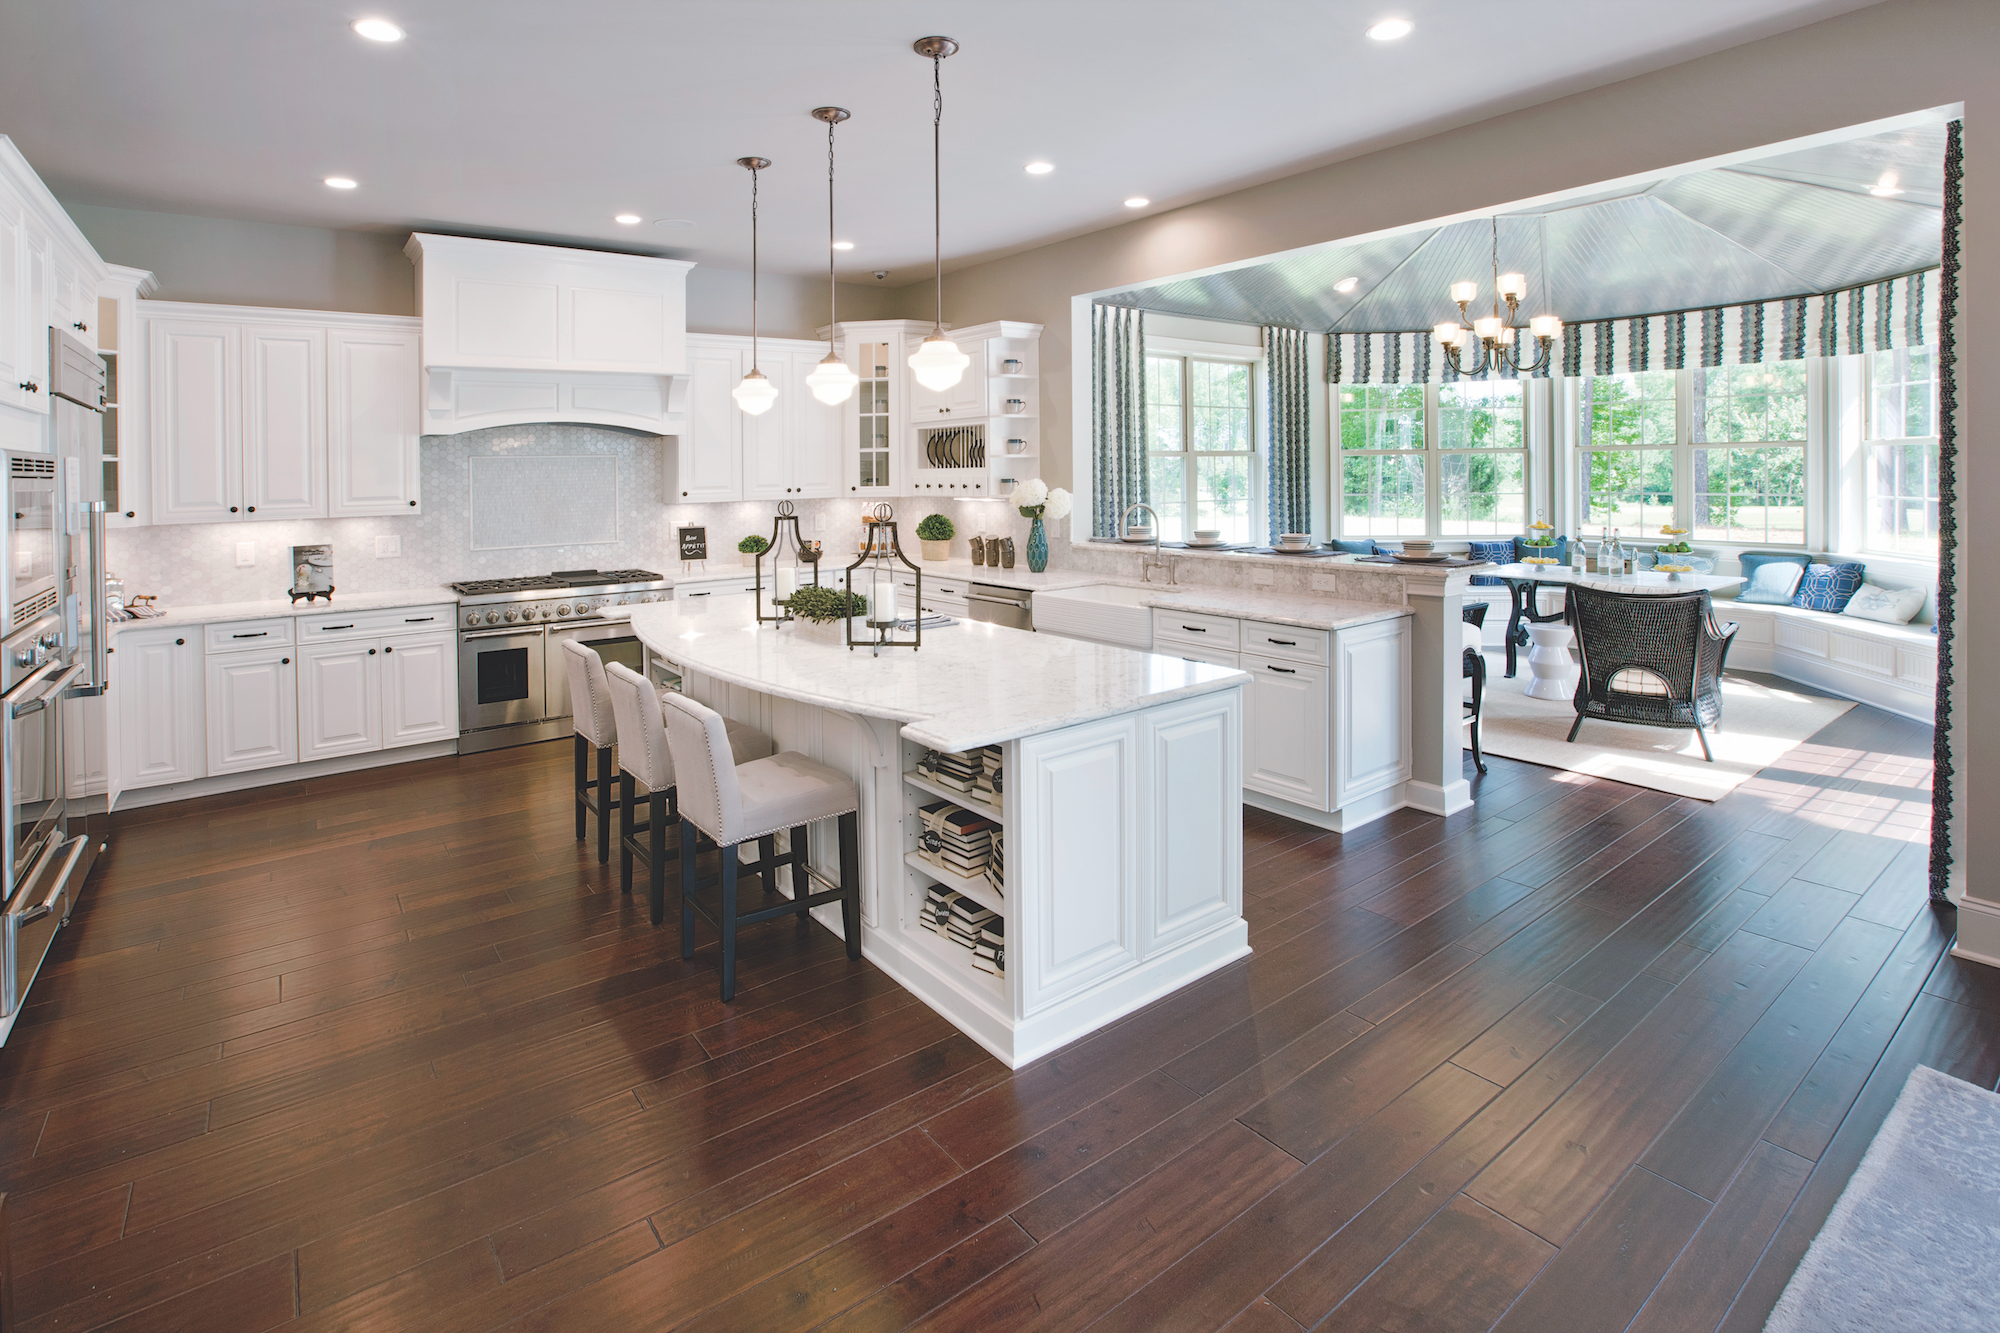 25 Luxury Kitchen Ideas for Your Dream Home | Build Beautiful on Kitchen Model Ideas  id=46124